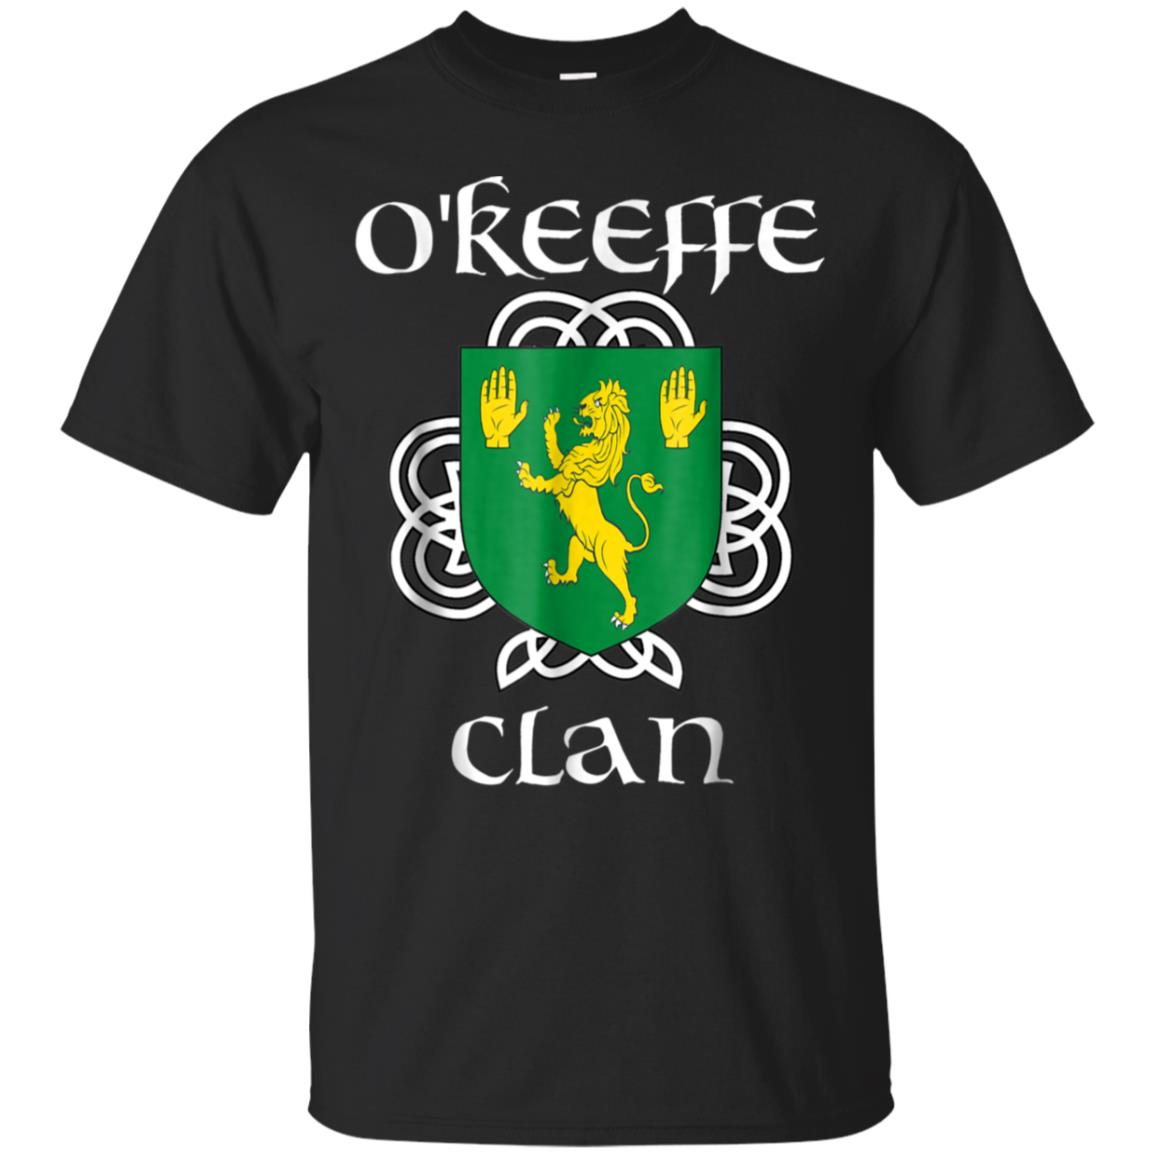 O'Keeffe Family Crest Shirt, Irish Reunion T Shirt 99promocode